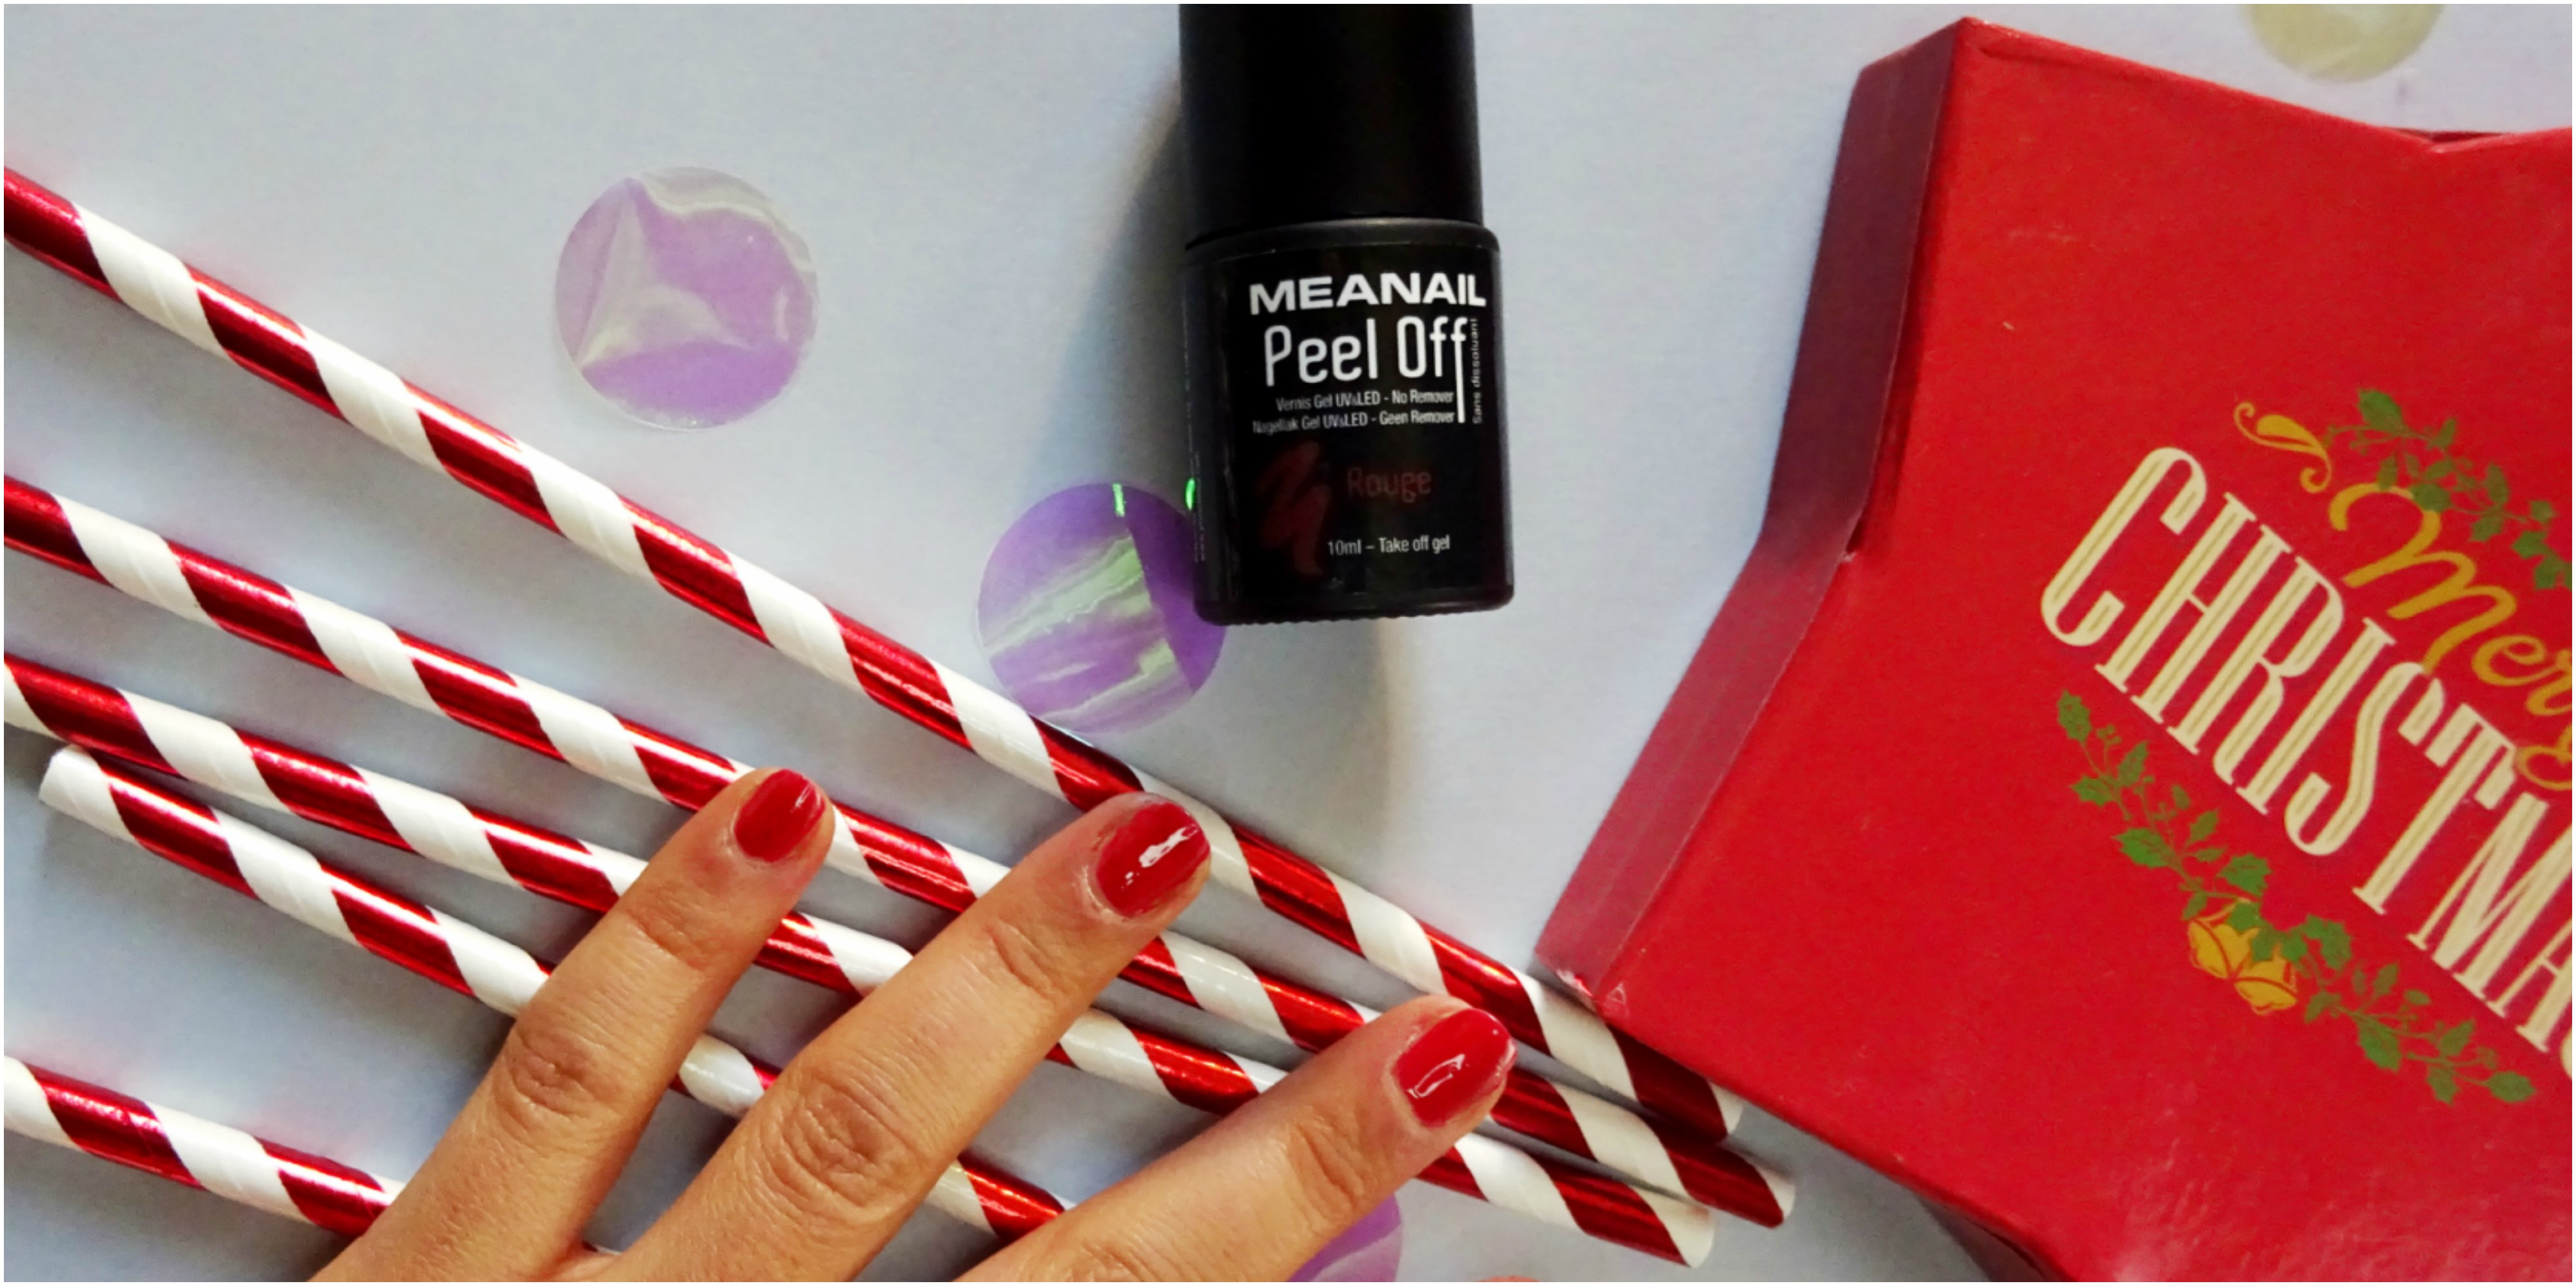 meanail-vernis-peel-off-vegan-cruelty-free